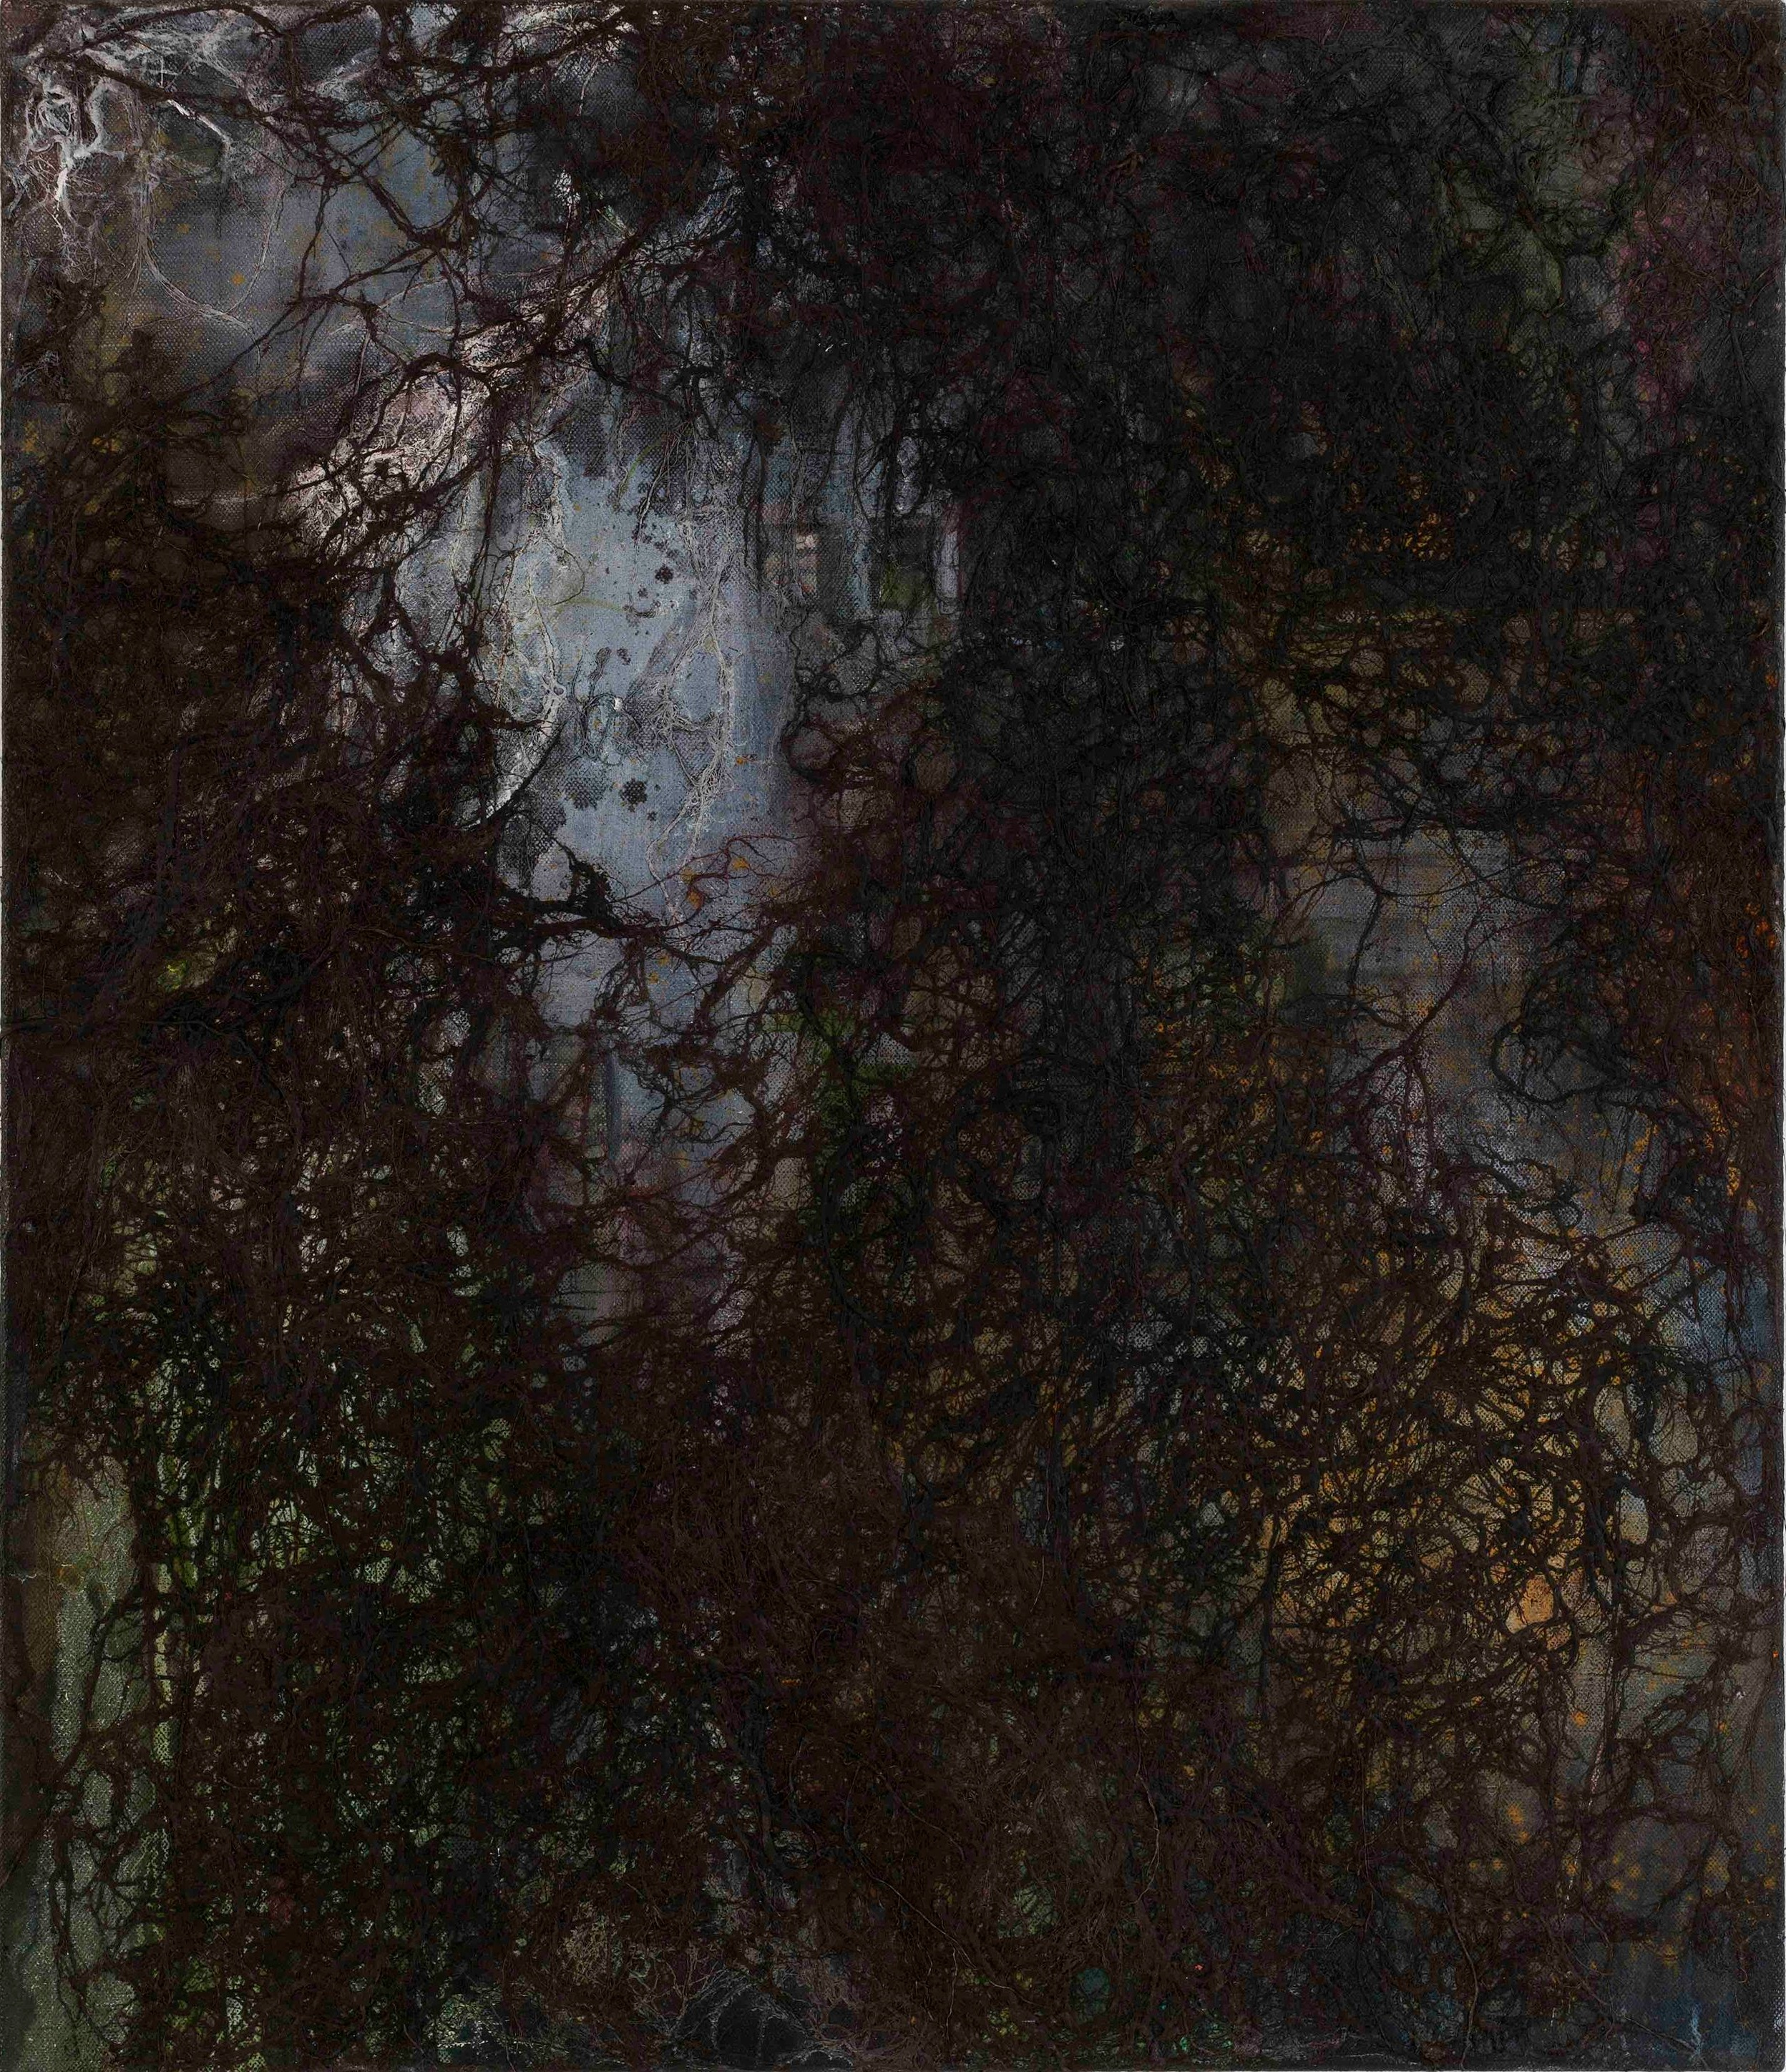 No Fear / 2010 / oil, beeswax, thread on canvas / 45.66 x 39.37 inches / 116 x 100 cm